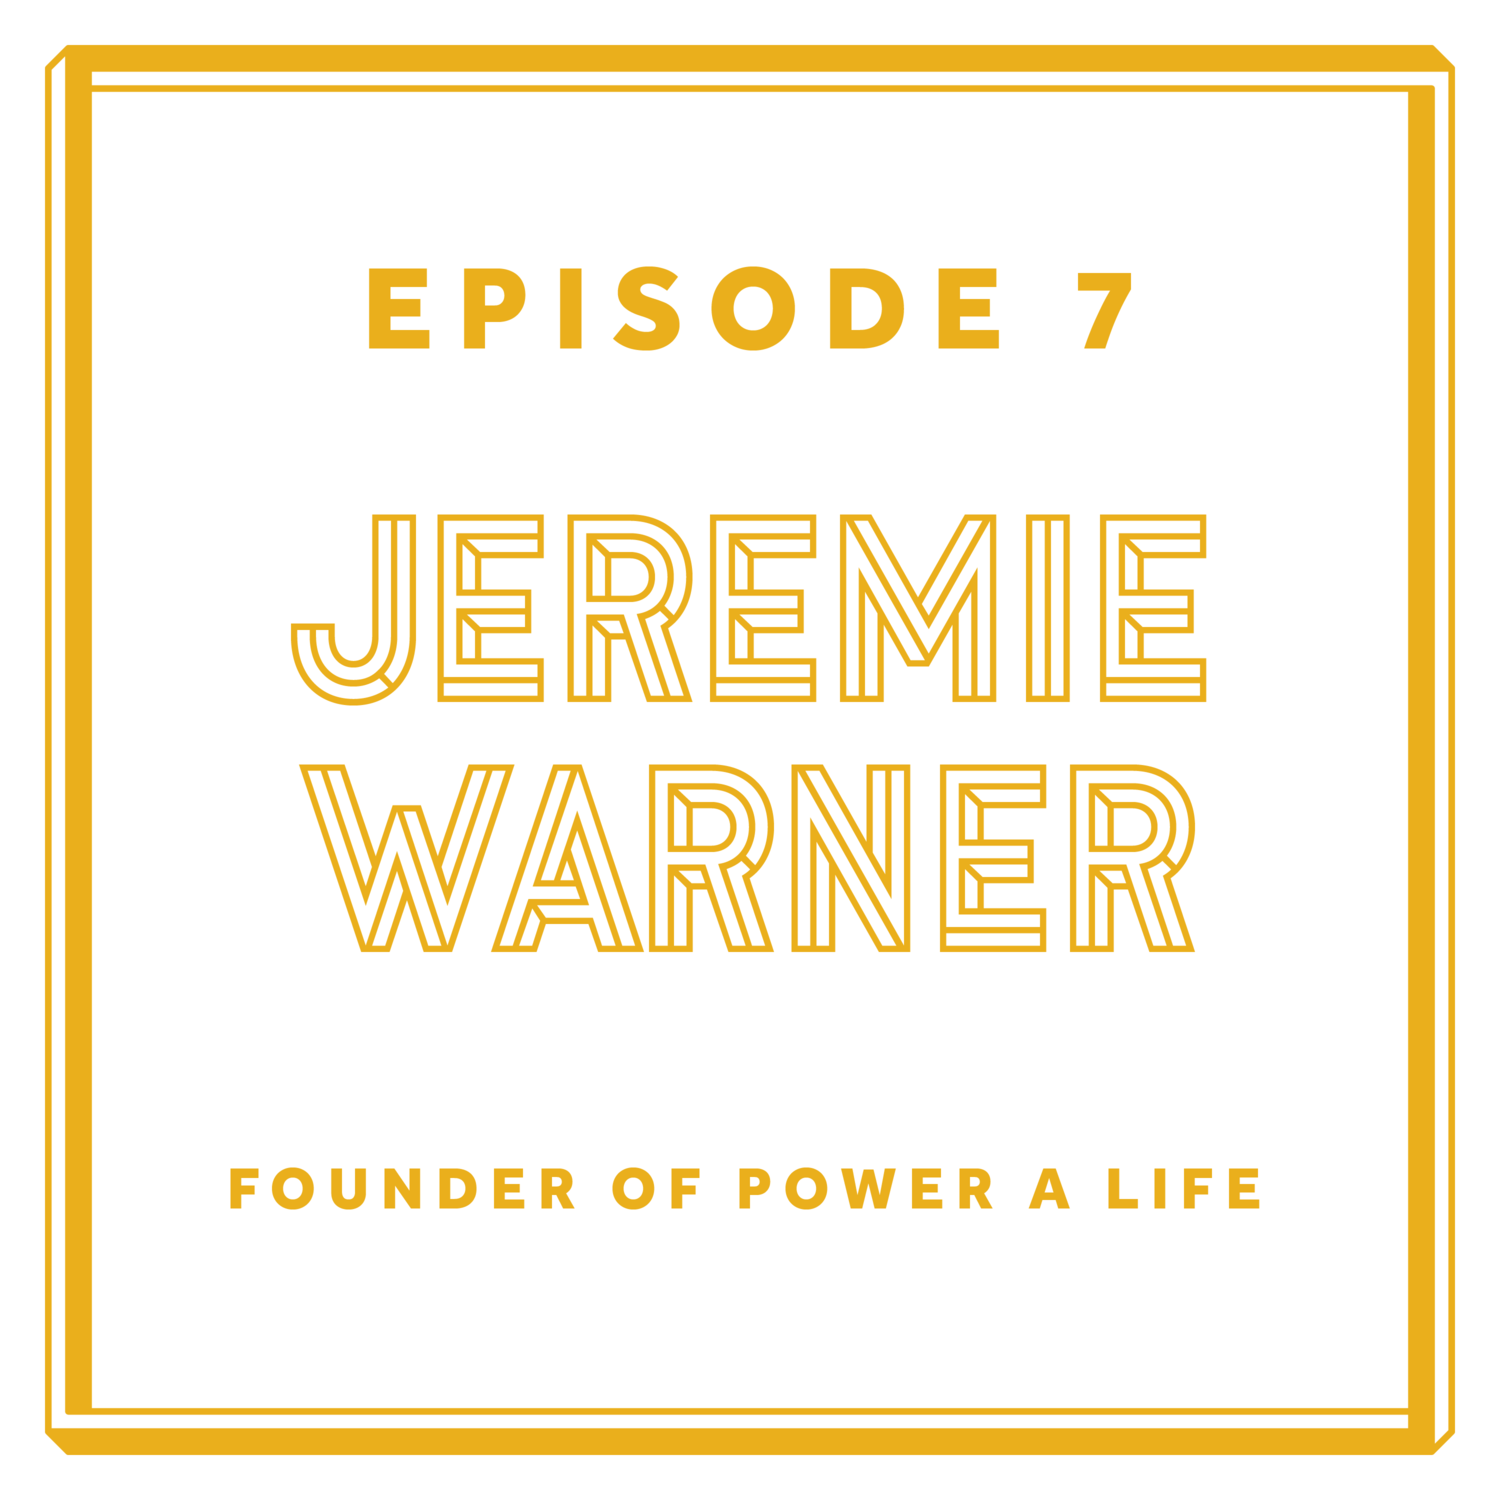 Episode 7: Jeremie Warner - Founder of Power A Life